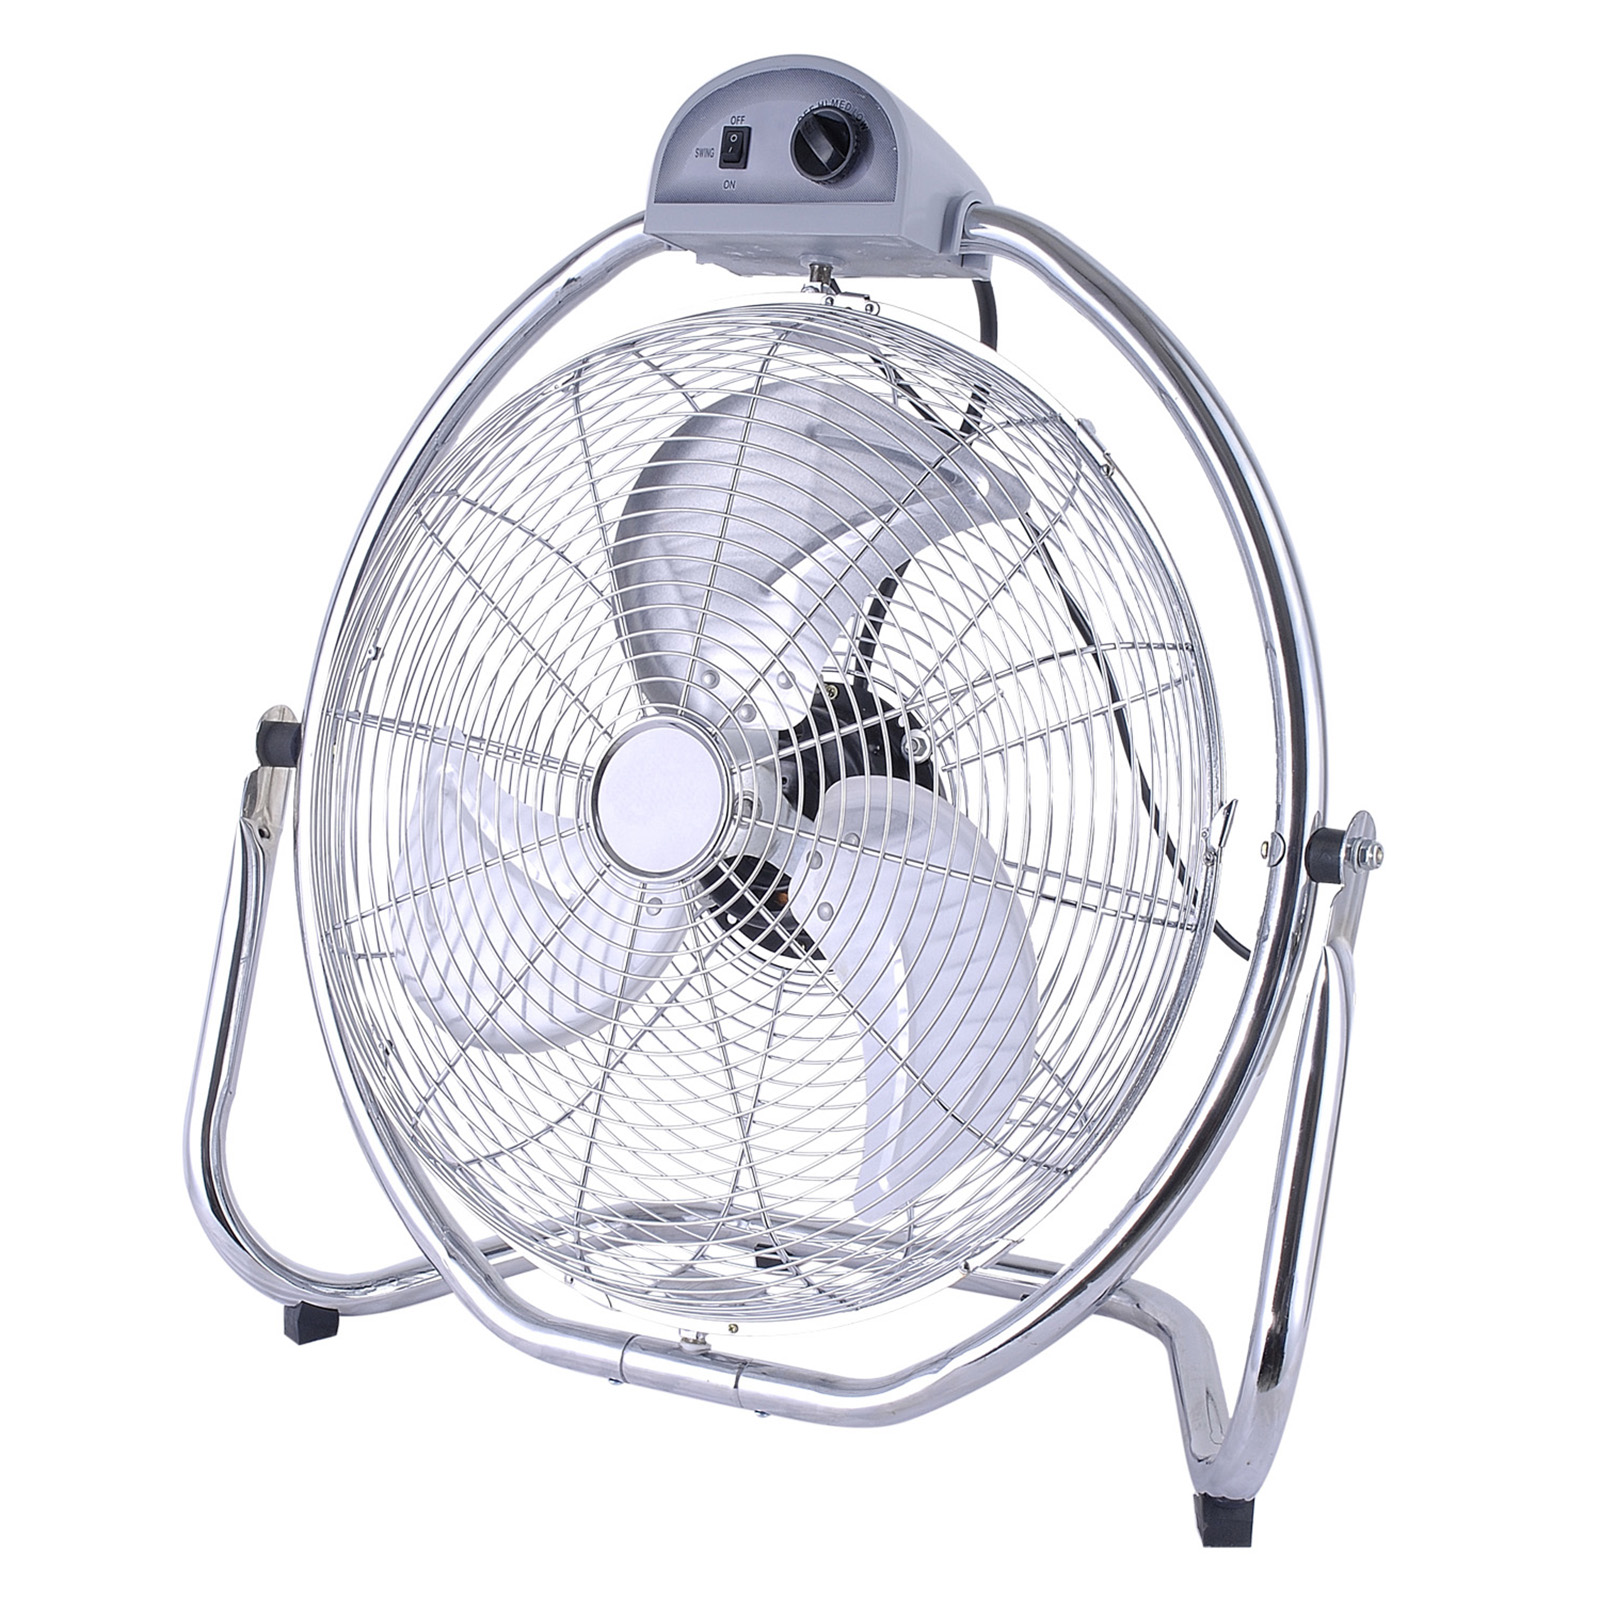 OPTIMUS F4208 INDUSTRIAL 20INCH HIGH VELOCITY FAN WITH CHROME